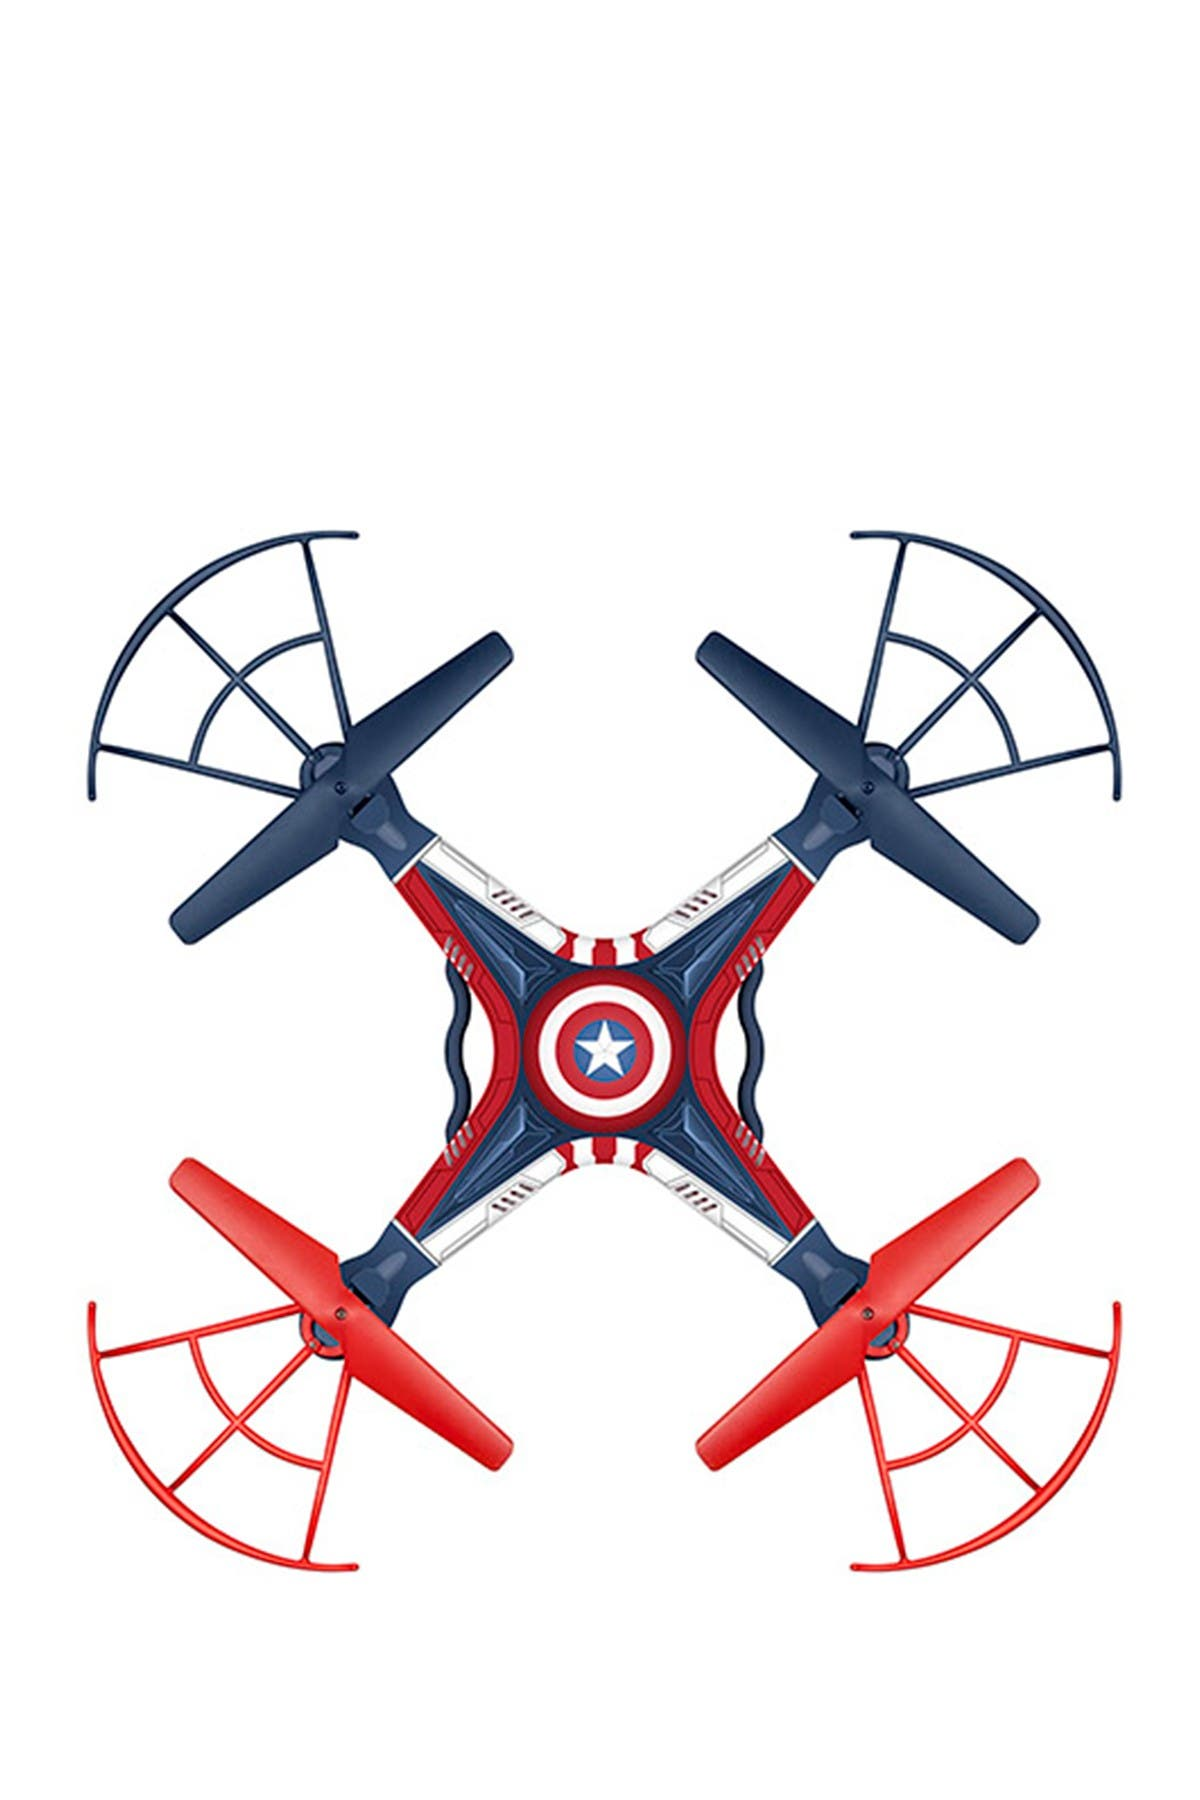 Image of World Tech Toys Marvel Licensed Captain America Sky Hero 2.4GHz 4.5CH RC Drone